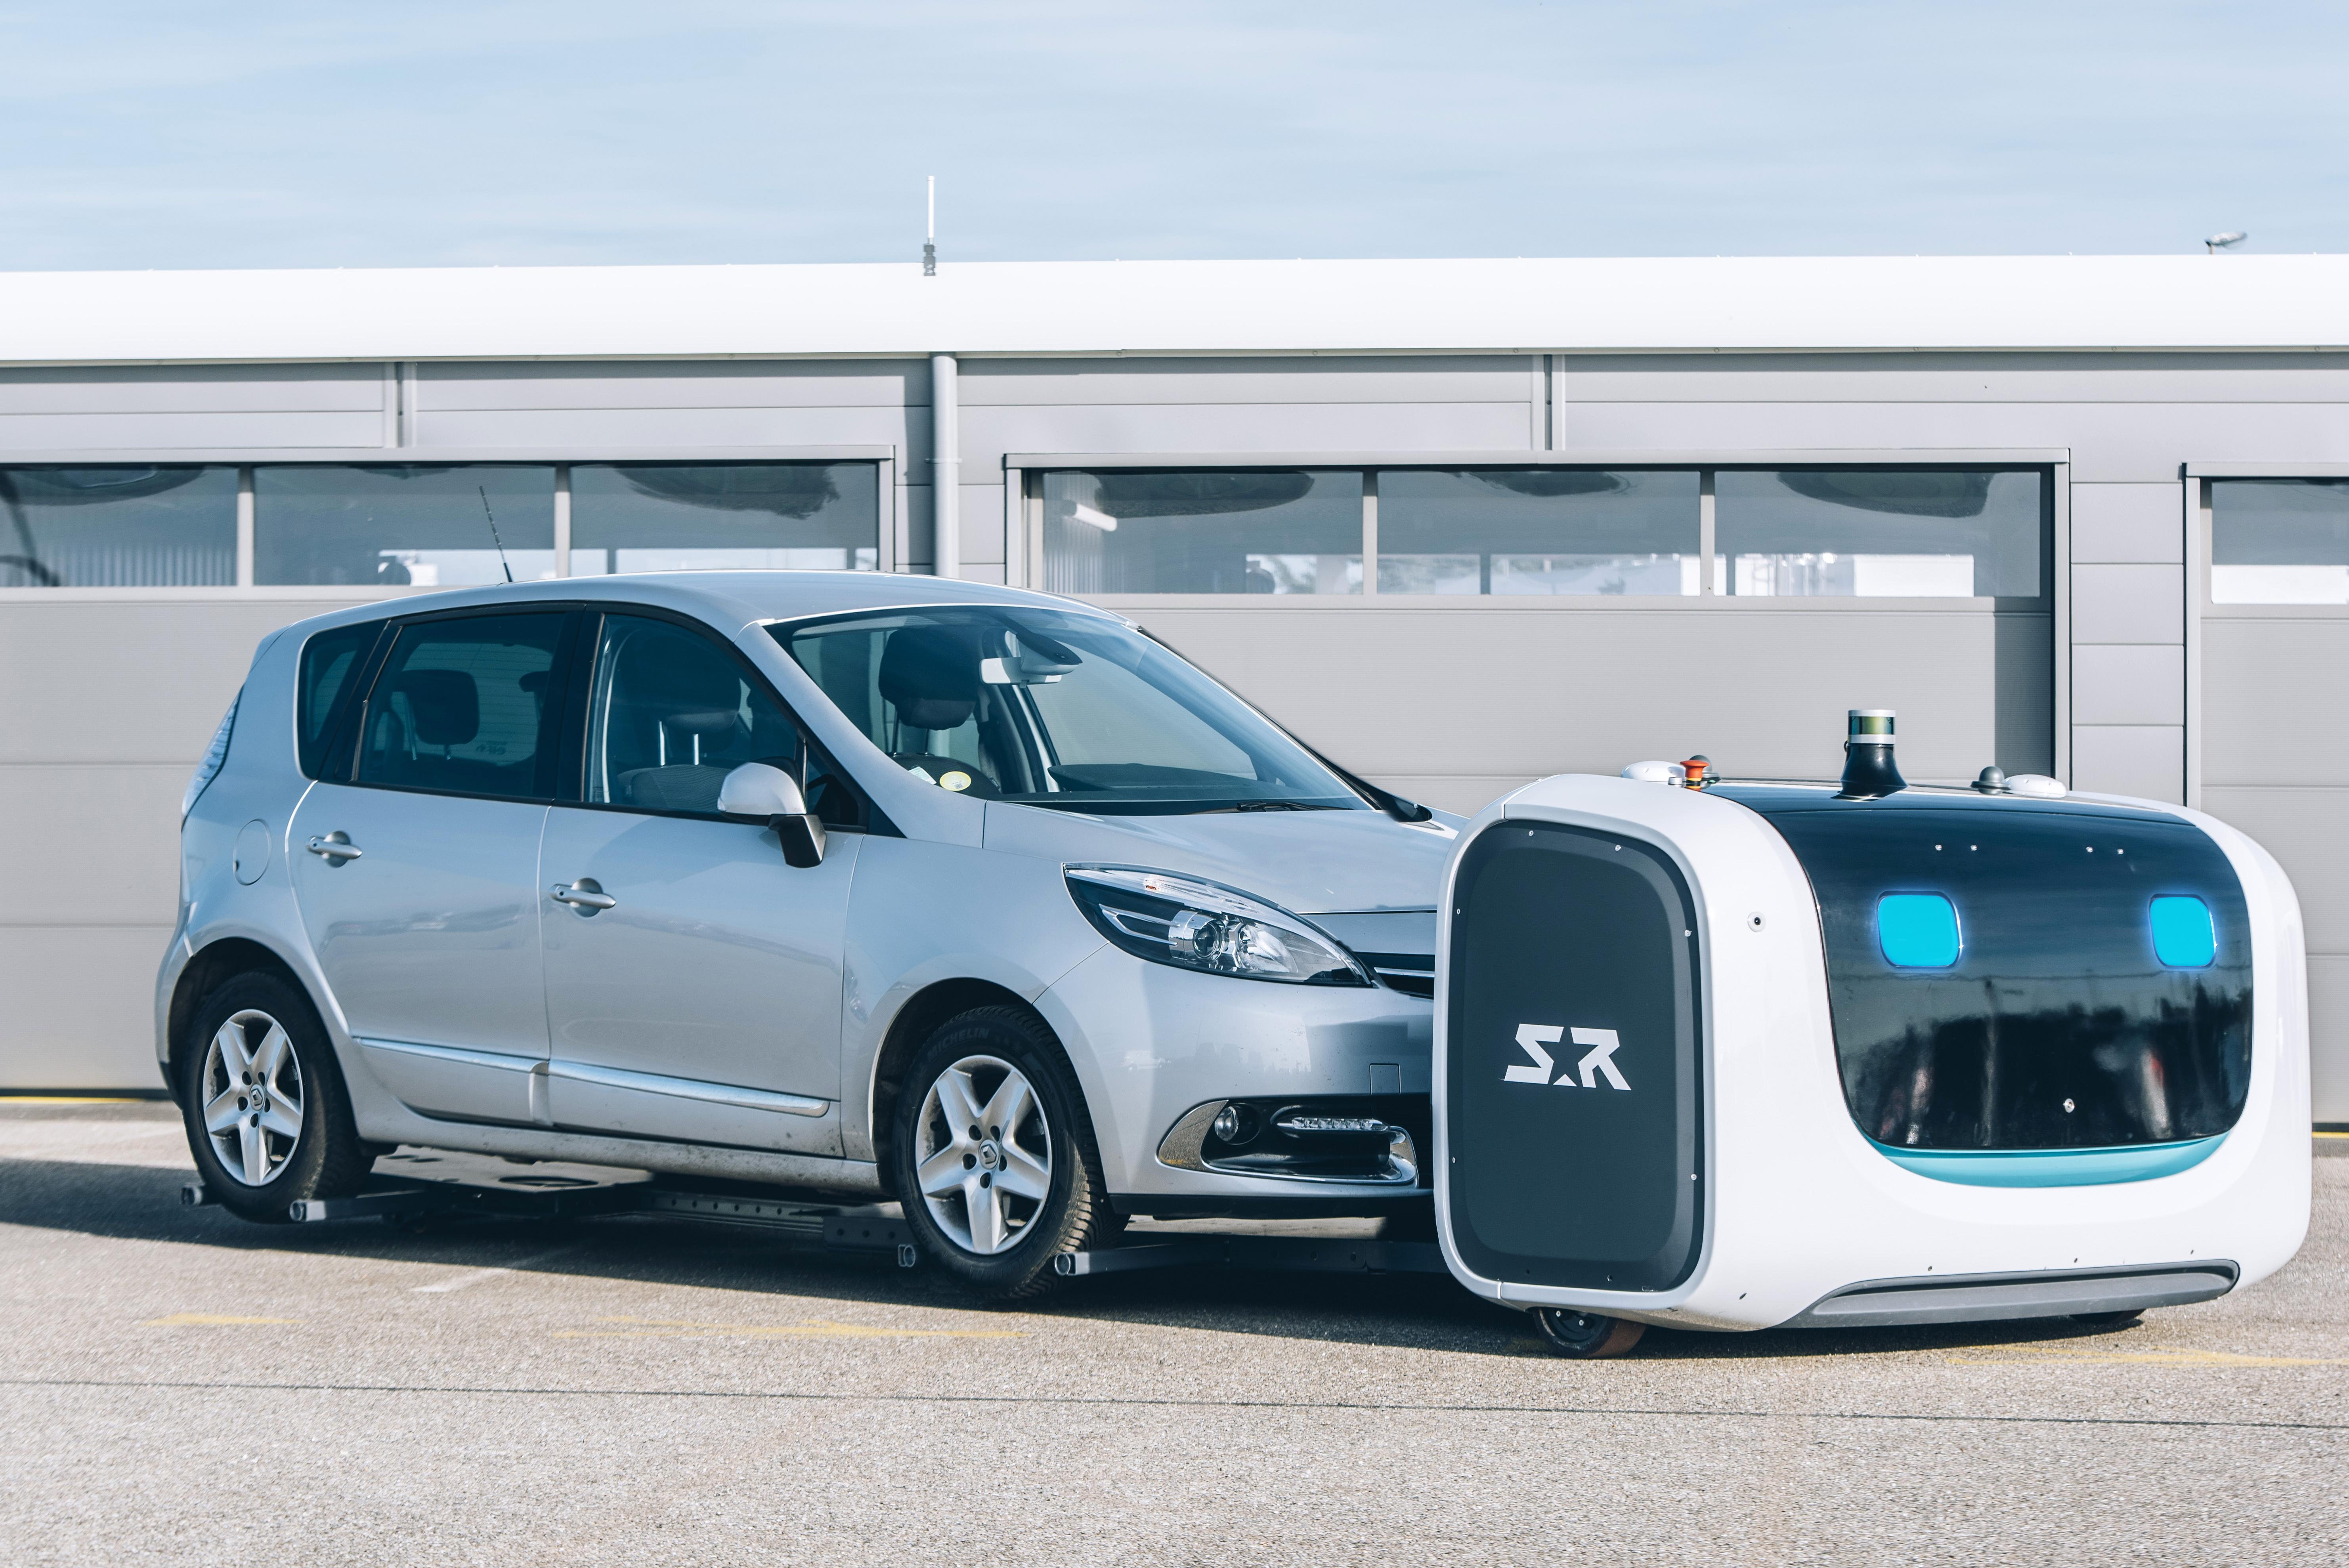 Stansted Car Village Shuttle Gatwick Airport To Introduce Toaster Robots That Valet